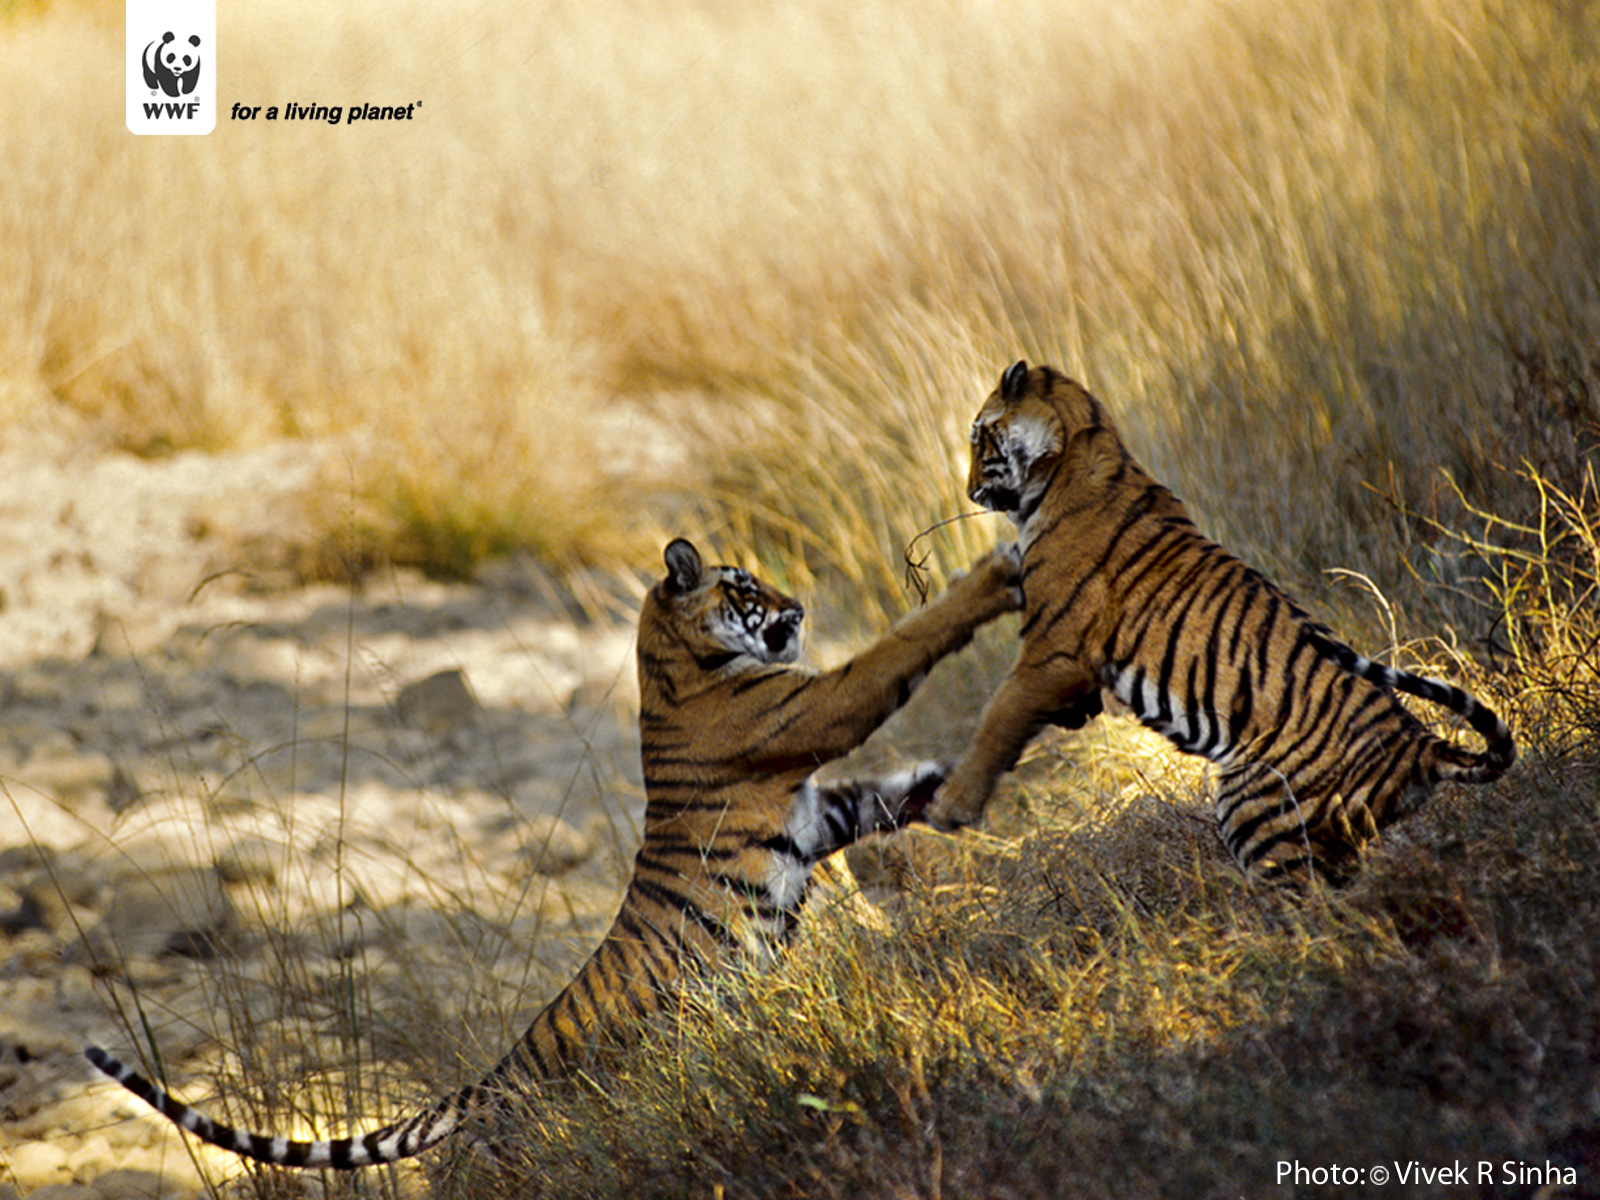 Tiger Wallpapers - Wwf Tiger , HD Wallpaper & Backgrounds